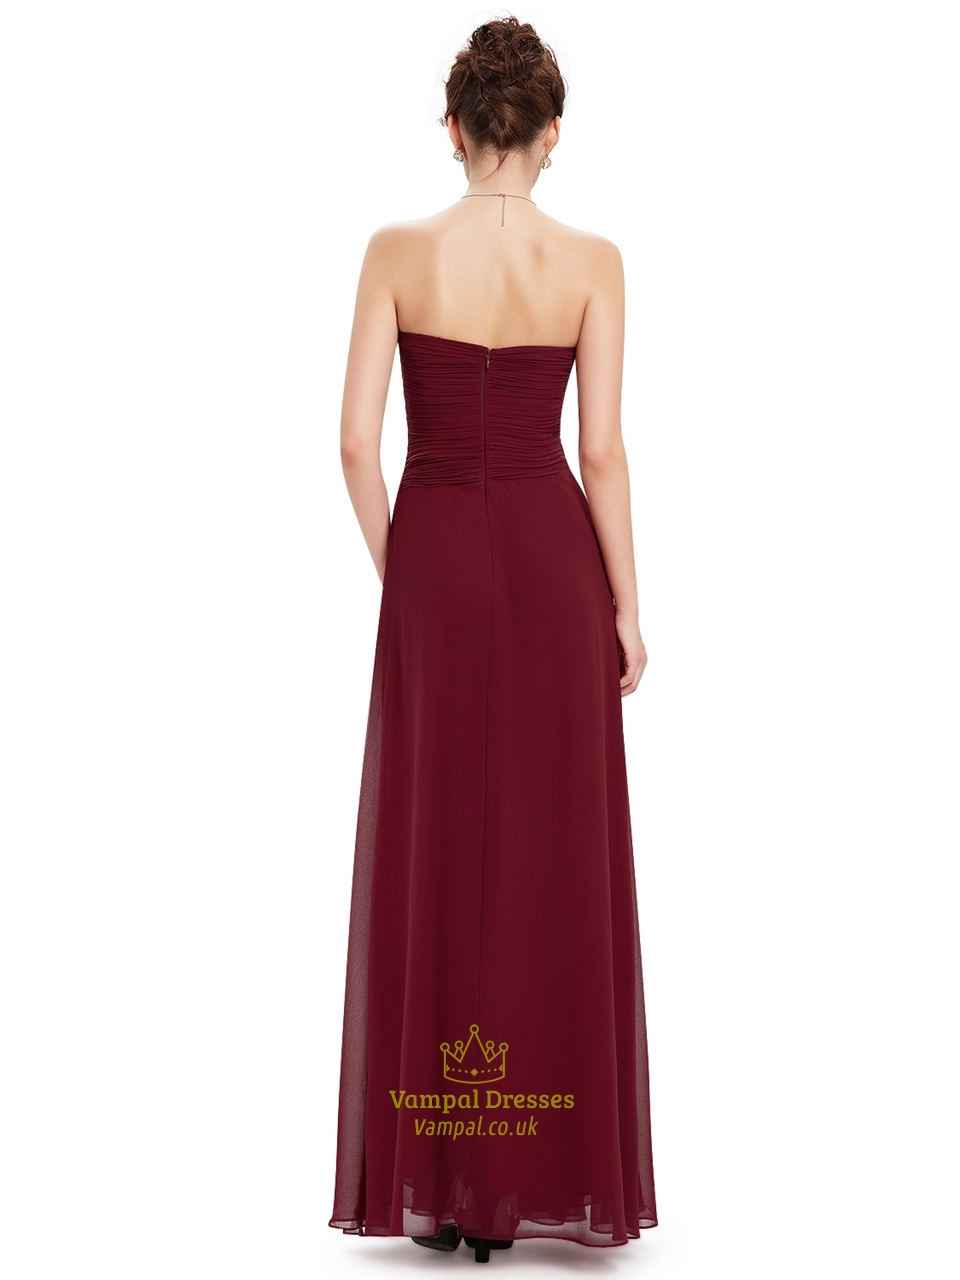 Burgundy Chiffon Strapless Bridesmaid Dresses With